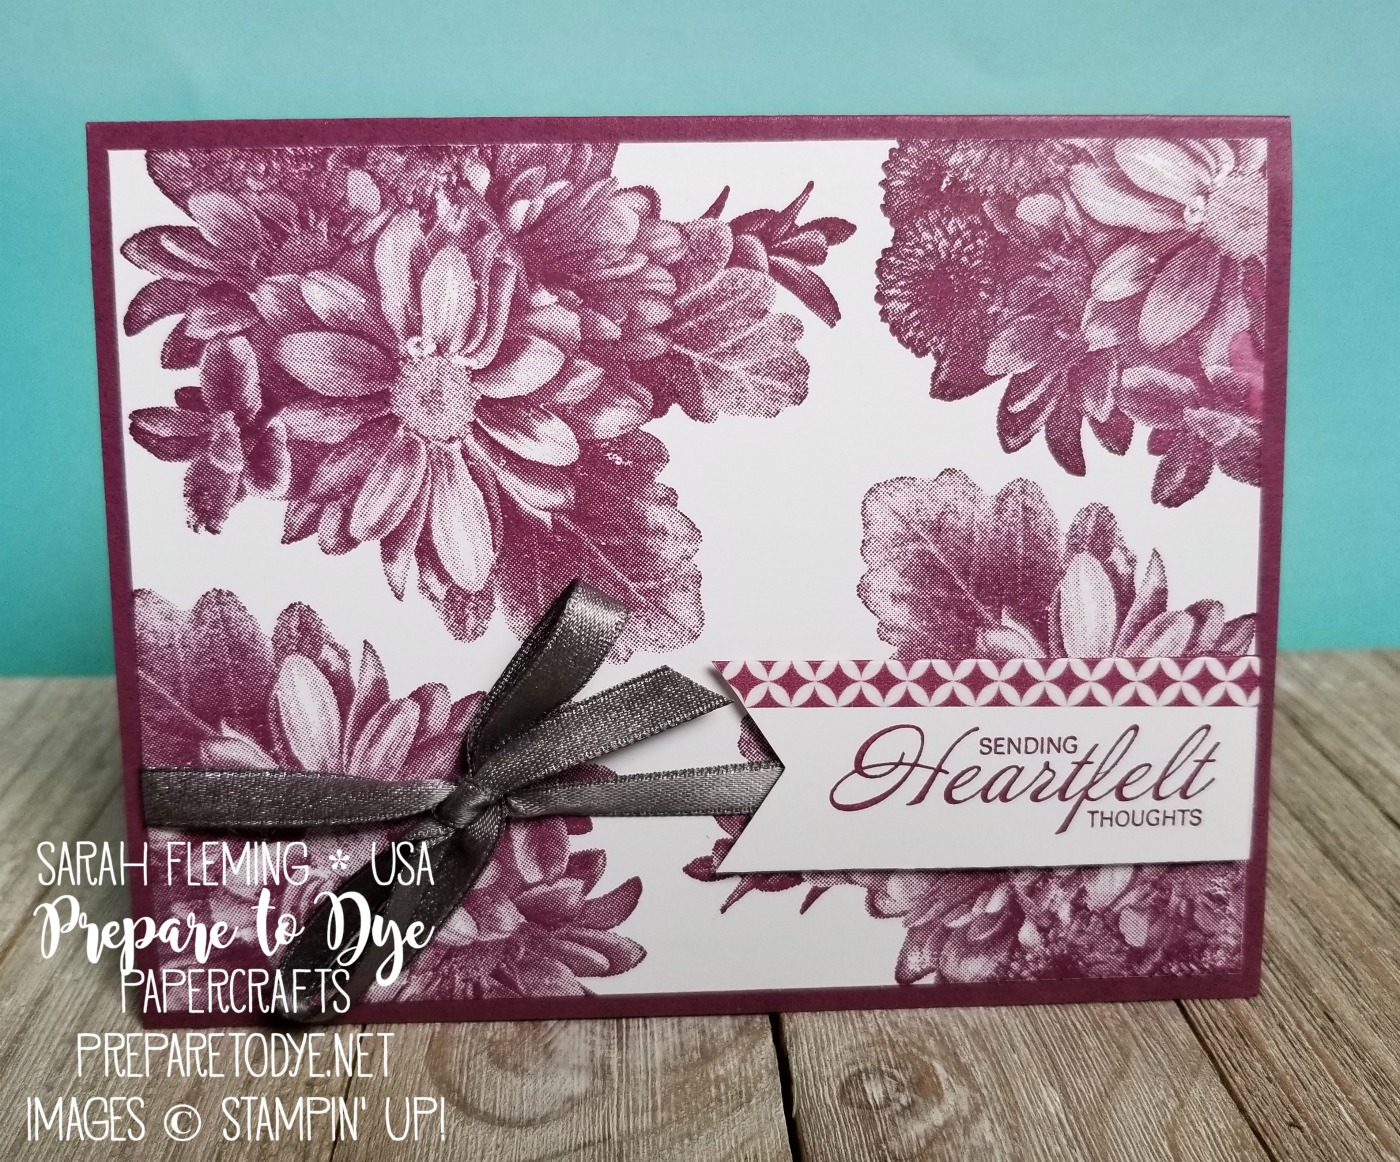 Stampin' Up! Heartfelt Blooms - Sale-A-Bration freebie with $50 purchase - Basics Pack 1 washi tape, Shimmer Ribbon Pack - Free Sale-A-Bration item with purchase - handmade sympathy get well card - Sarah Fleming - Prepare to Dye Papercrafts